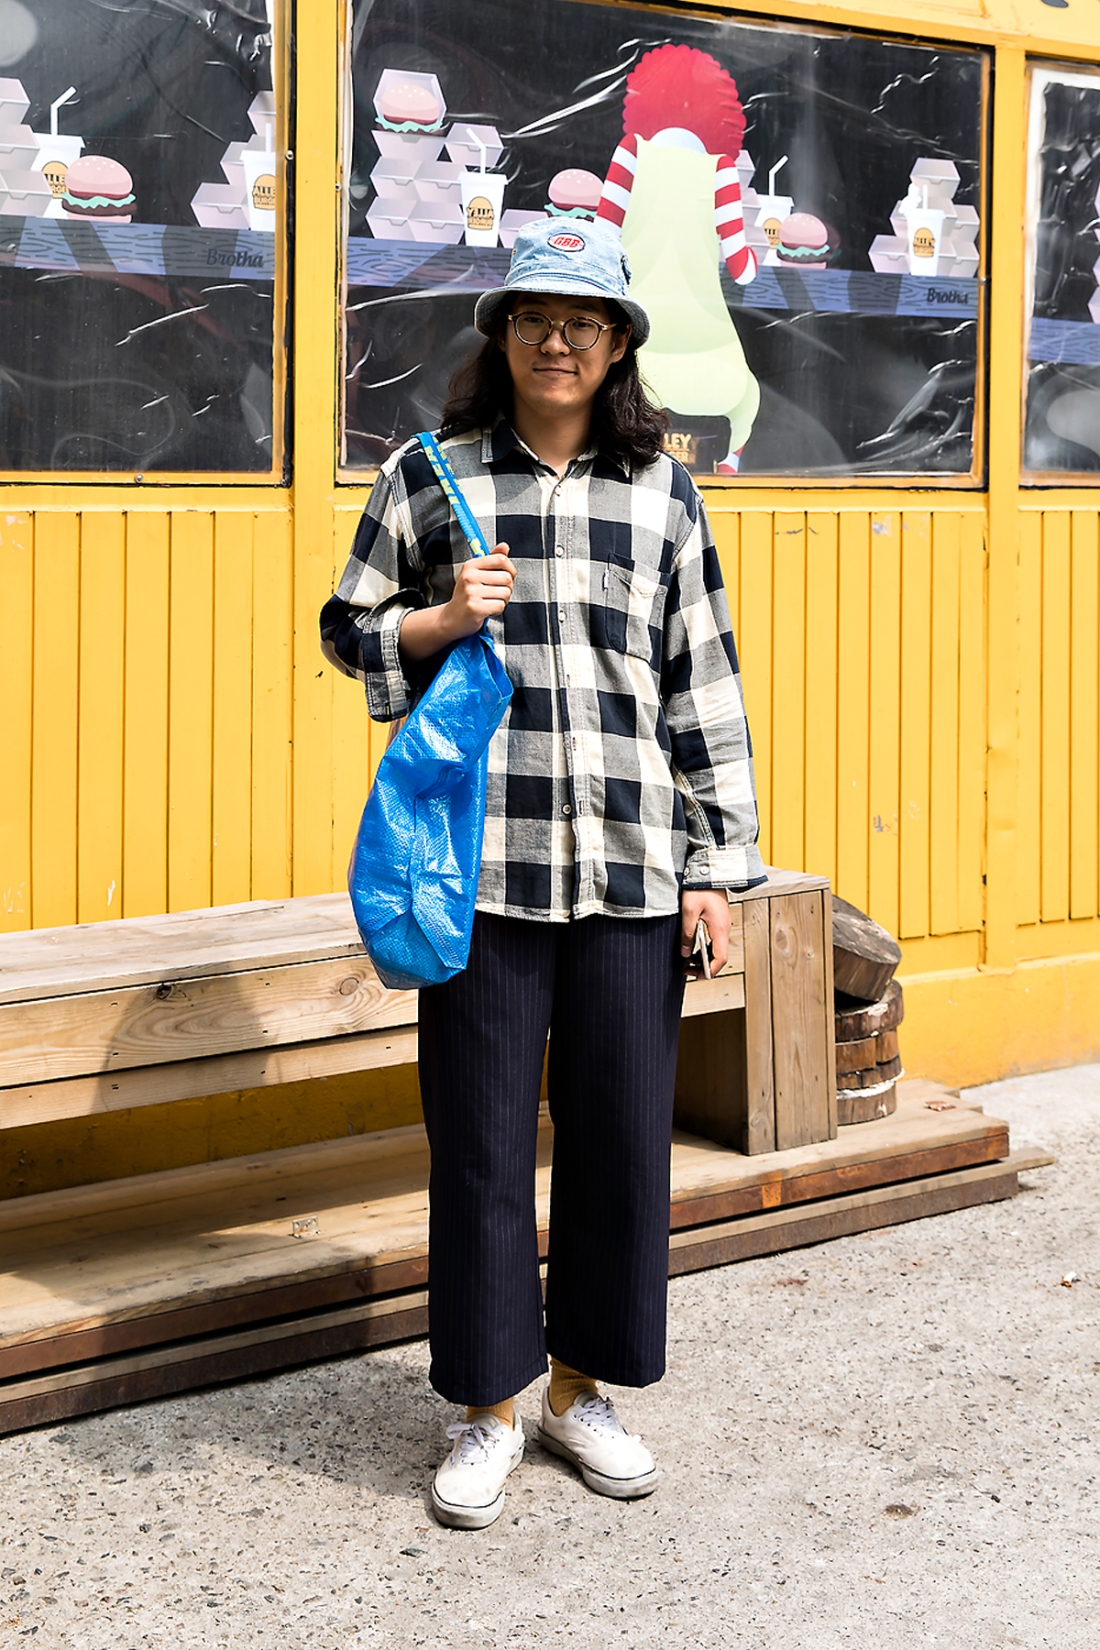 Choi Jungho, Street Fashion 2017 in Seoul.jpg